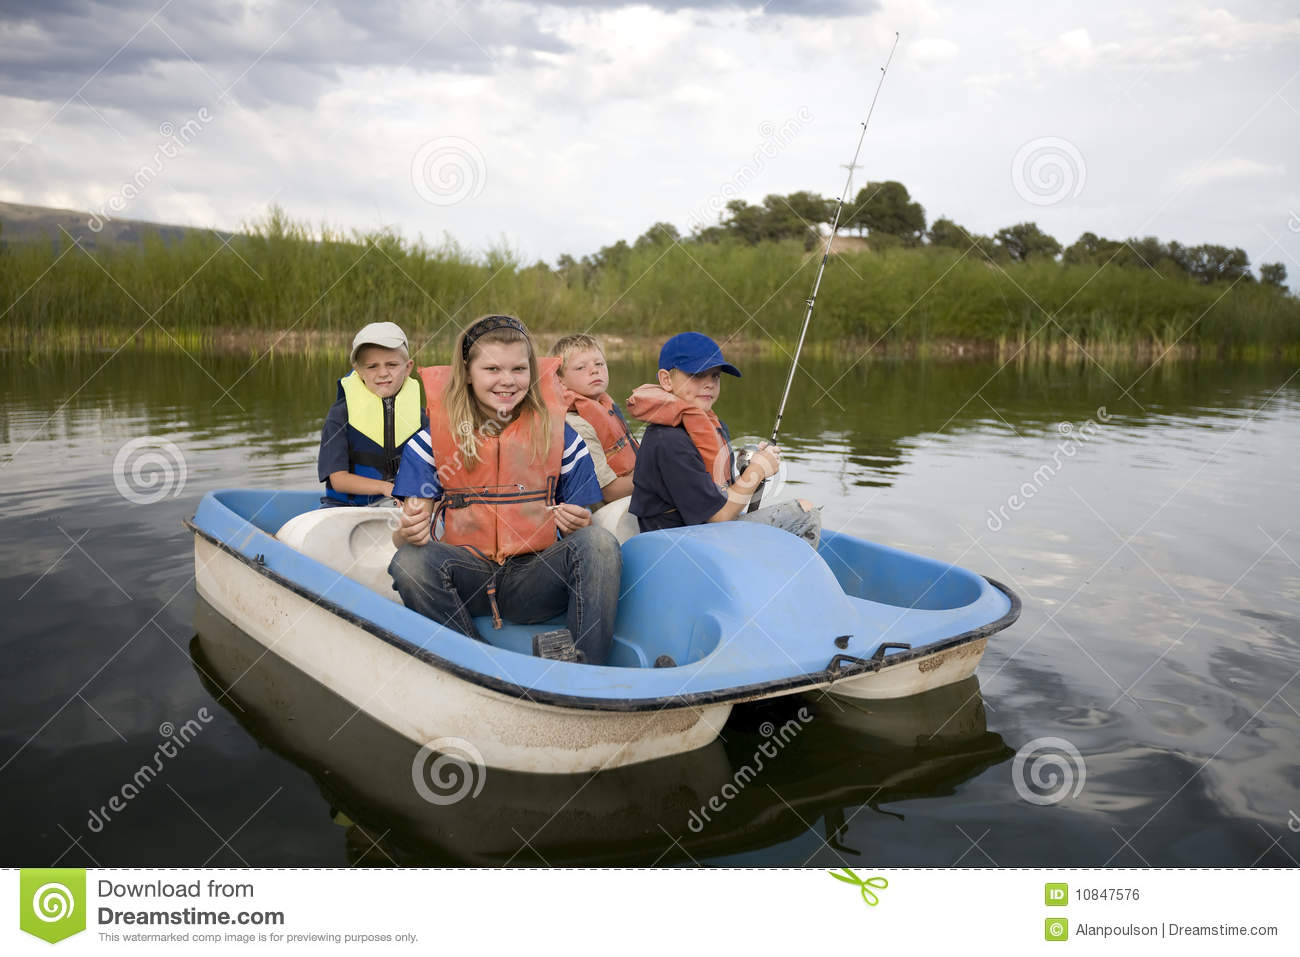 Kids In Boat Royalty Free Stock Image - Image: 10847576